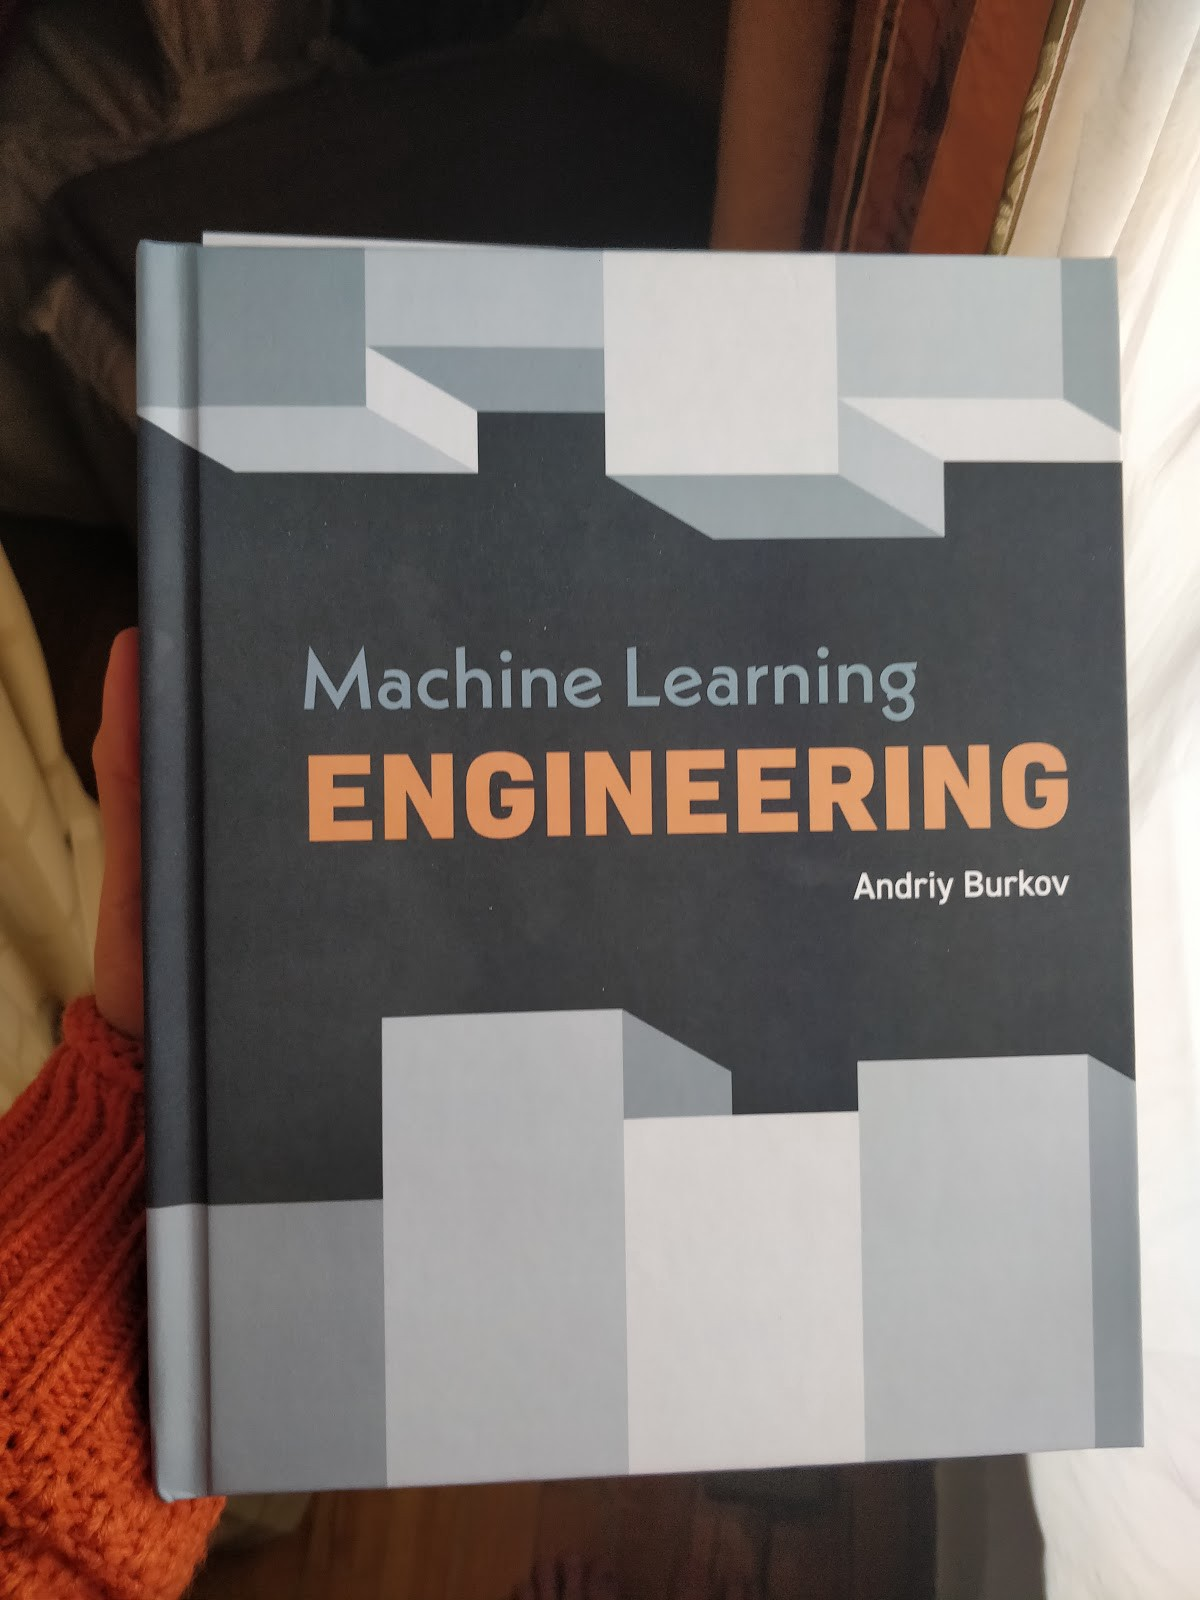 Machine Learning Engineering by Andriy Burkov—great reading for anyone interesting in ML systems!